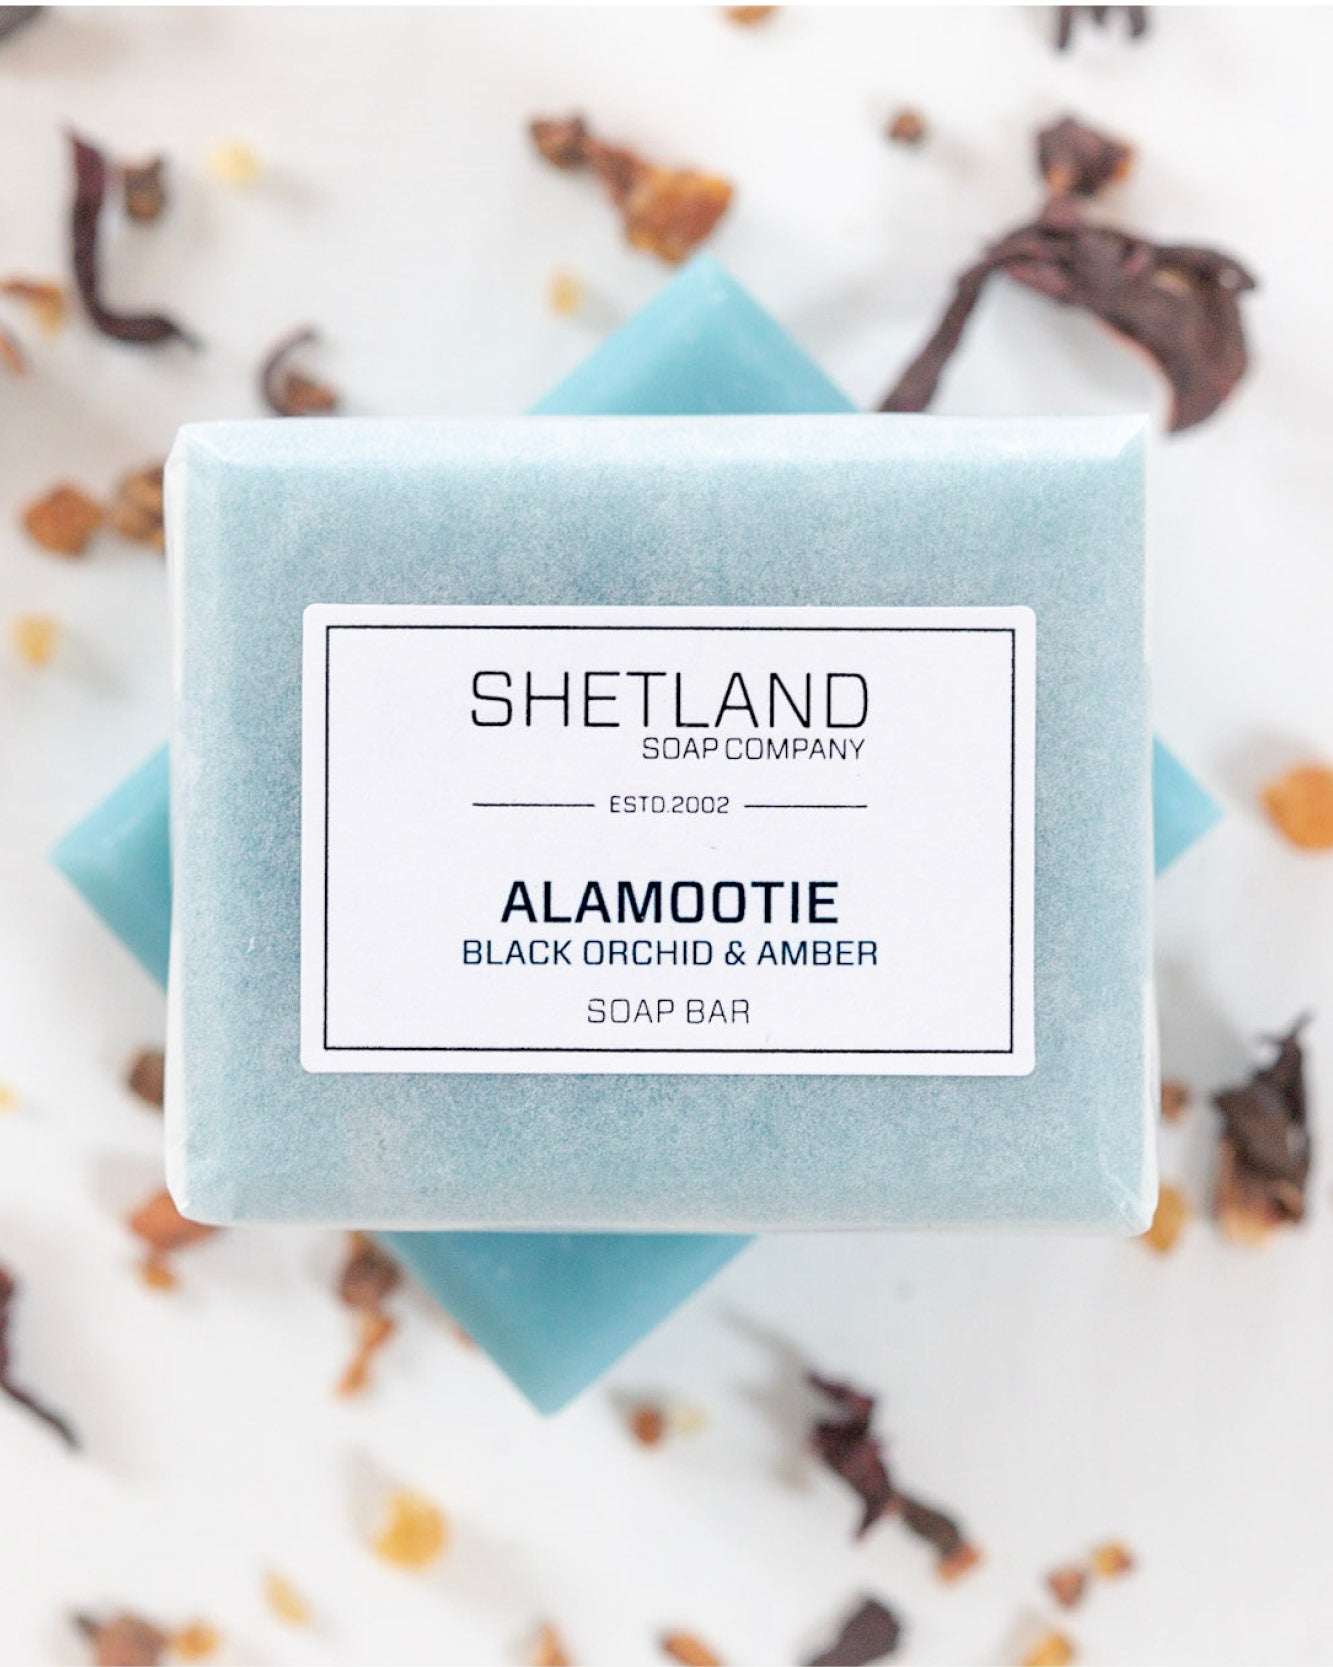 ALAMOOTIE SOAP BAR